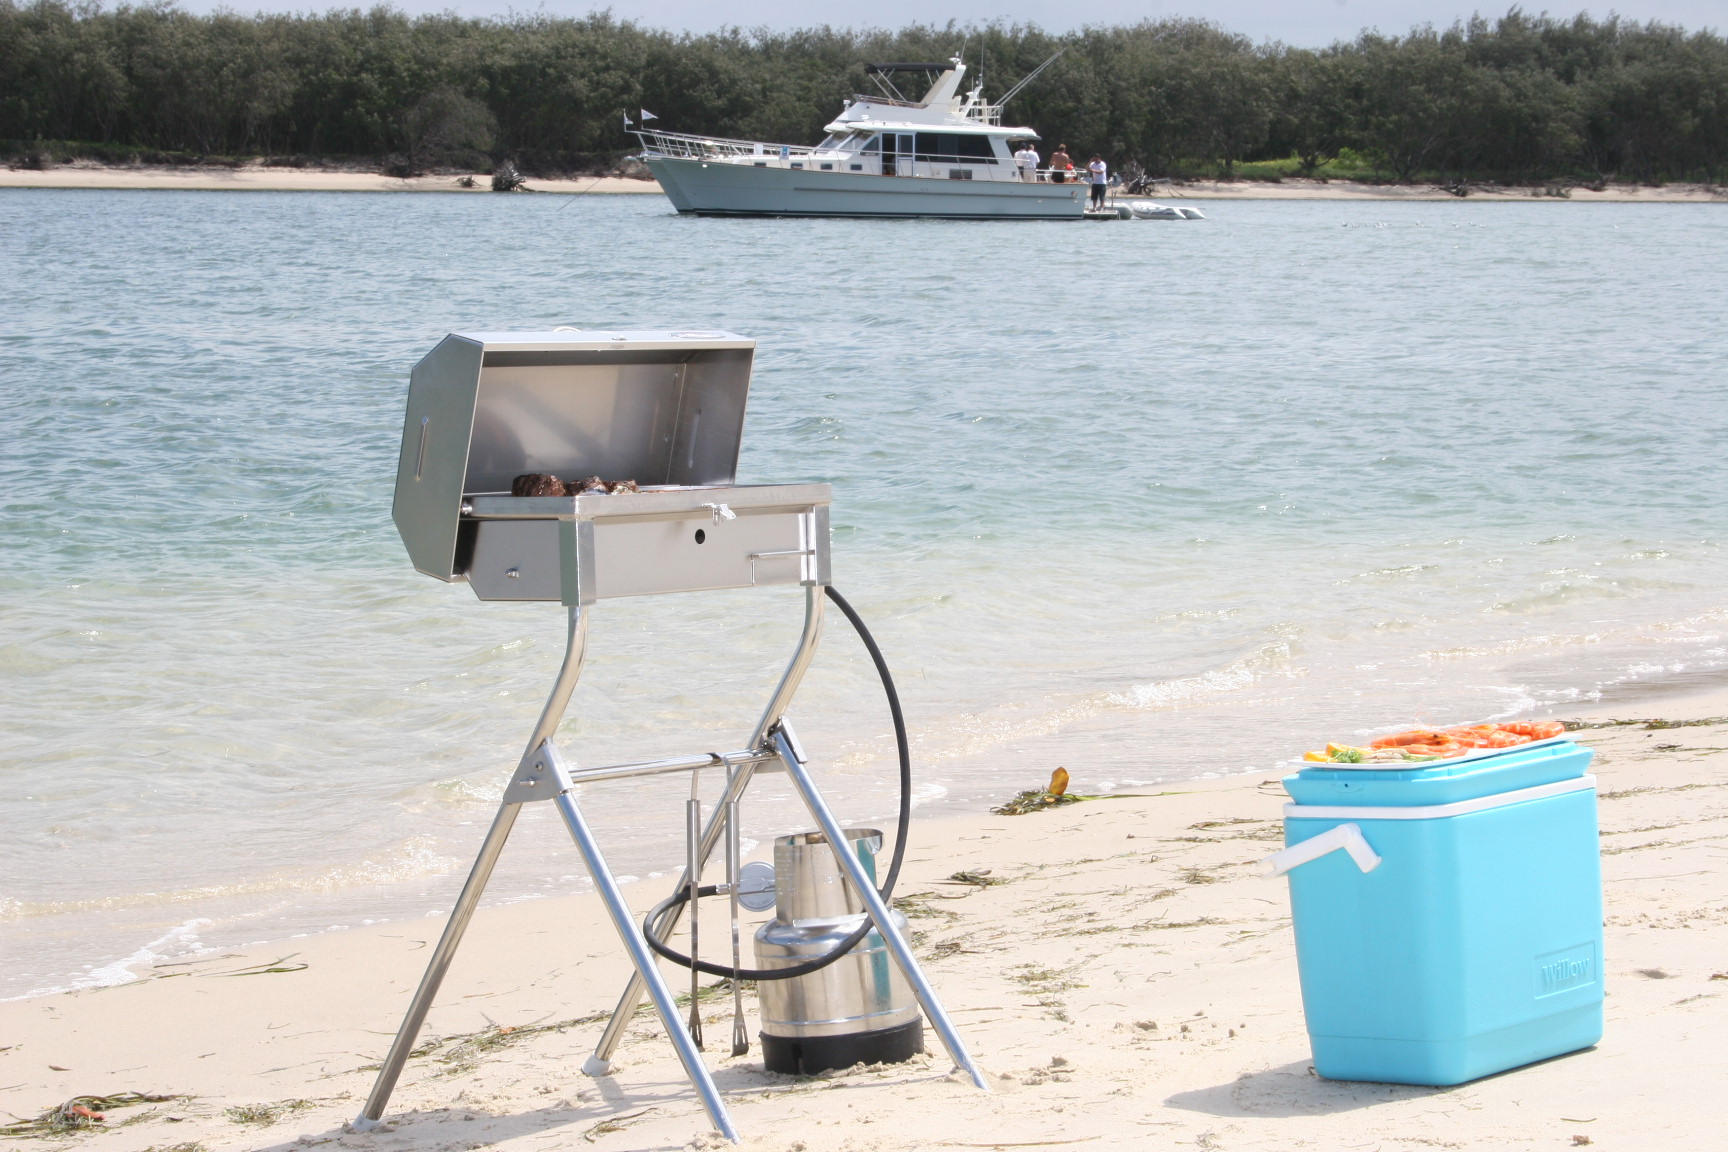 Portable Gas stainless steel BBQ on beach Australia